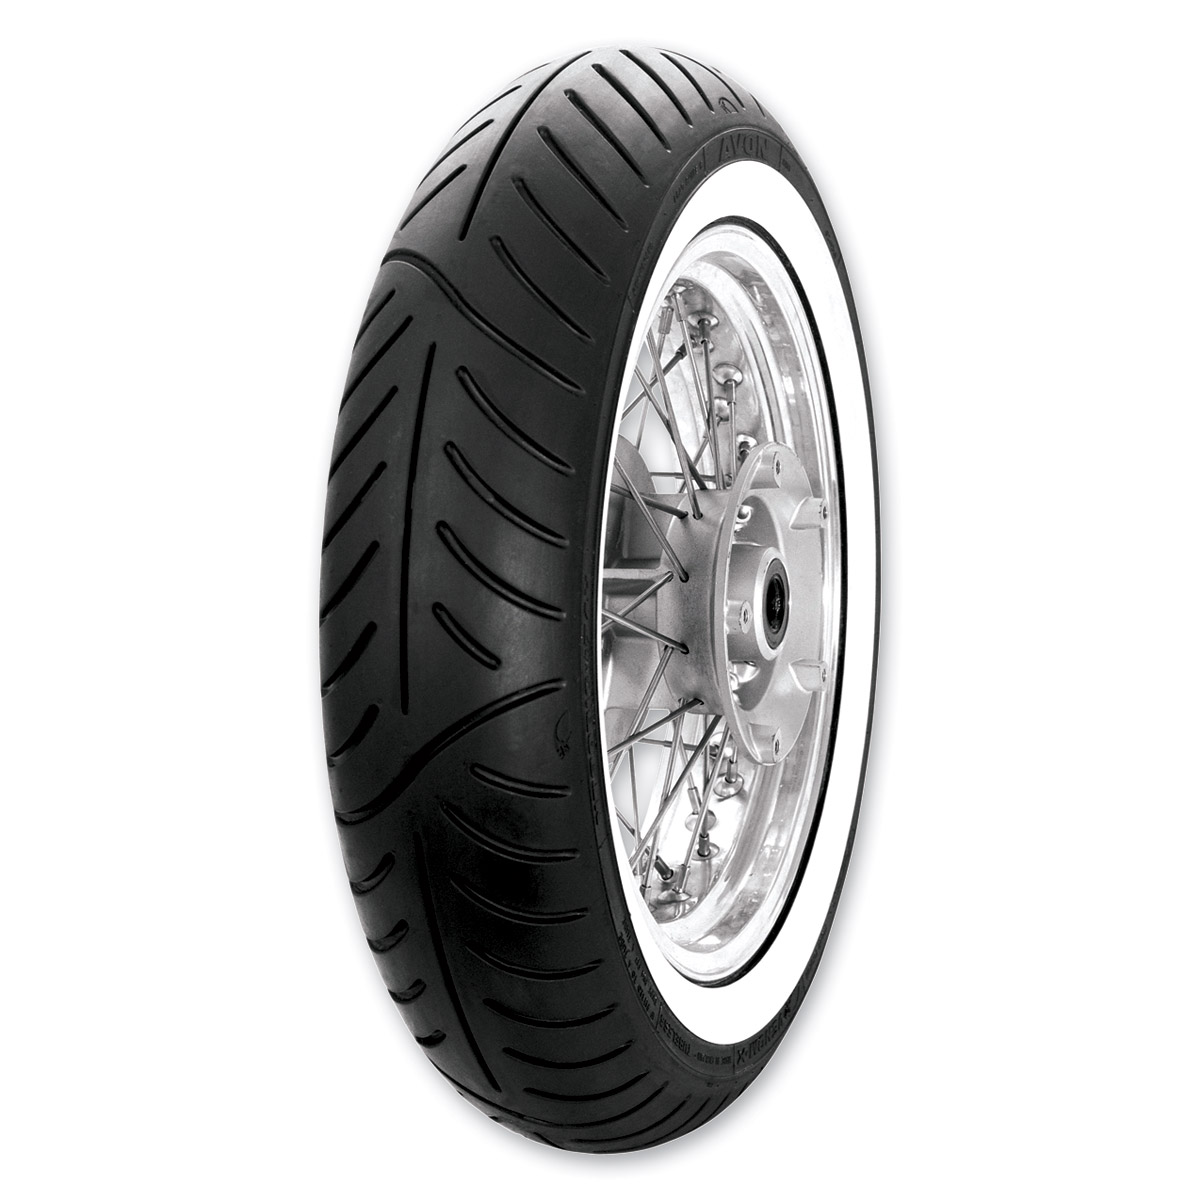 Total Motorcycle Tire/Tyre Guide - Avon Venom R AM41 and AM42